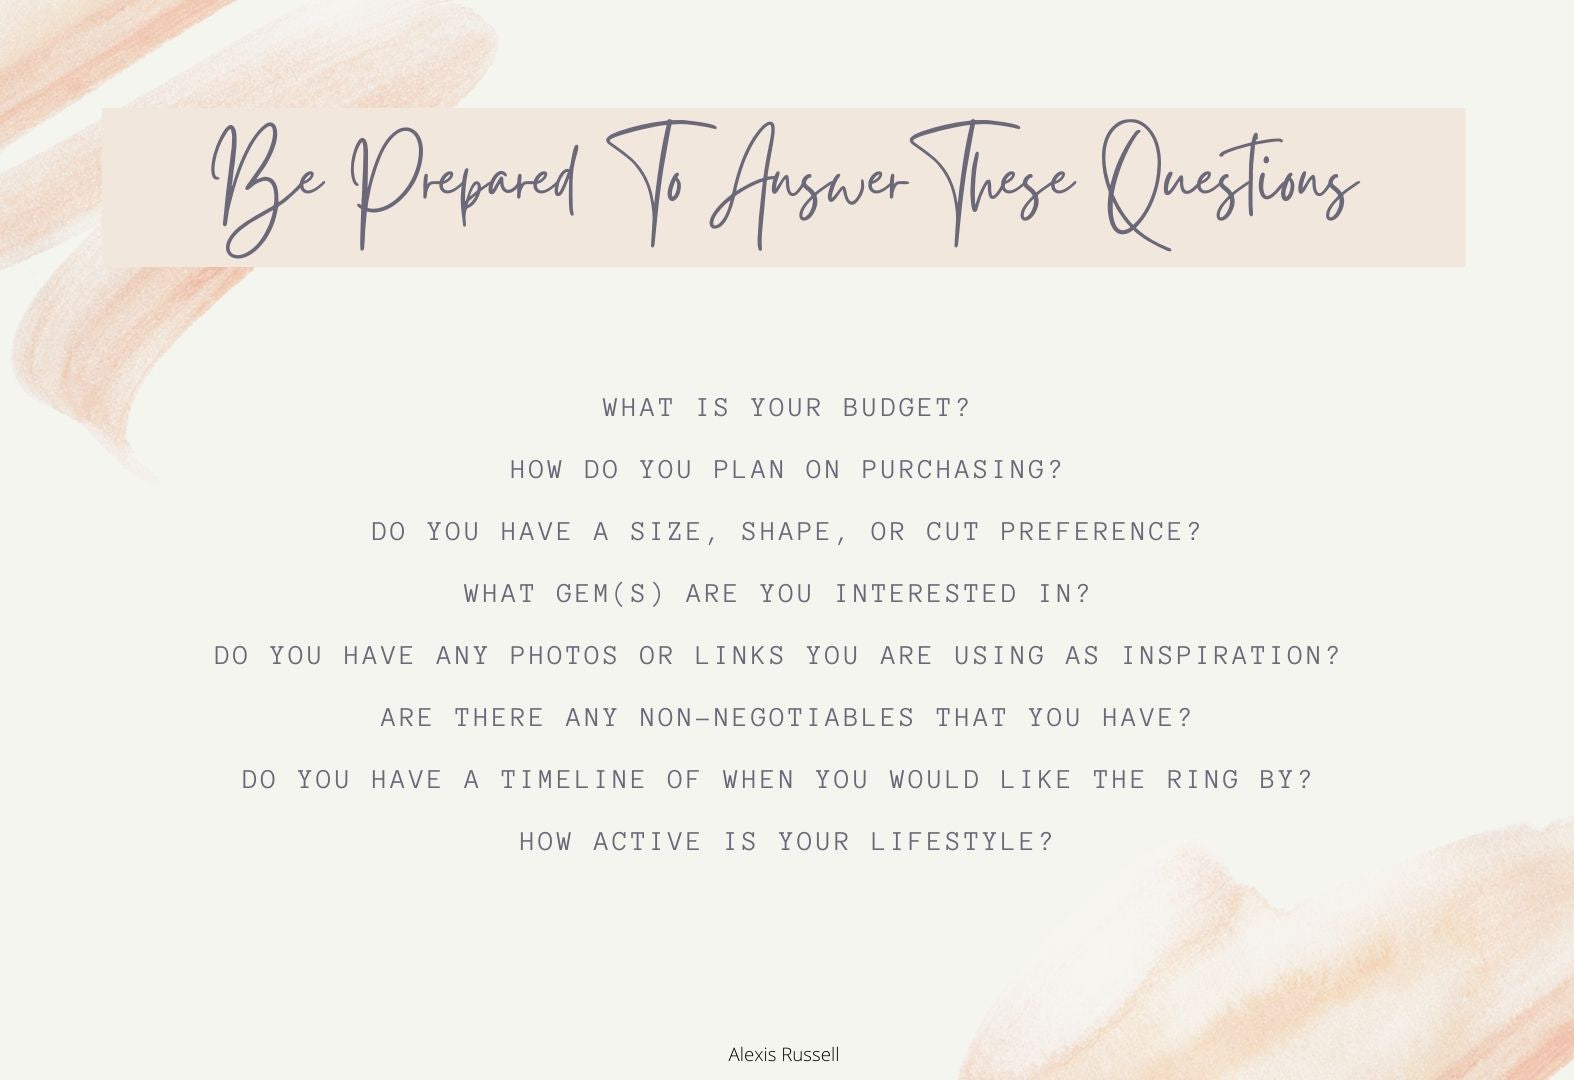 Review these questions to get the most out of your AR consultation